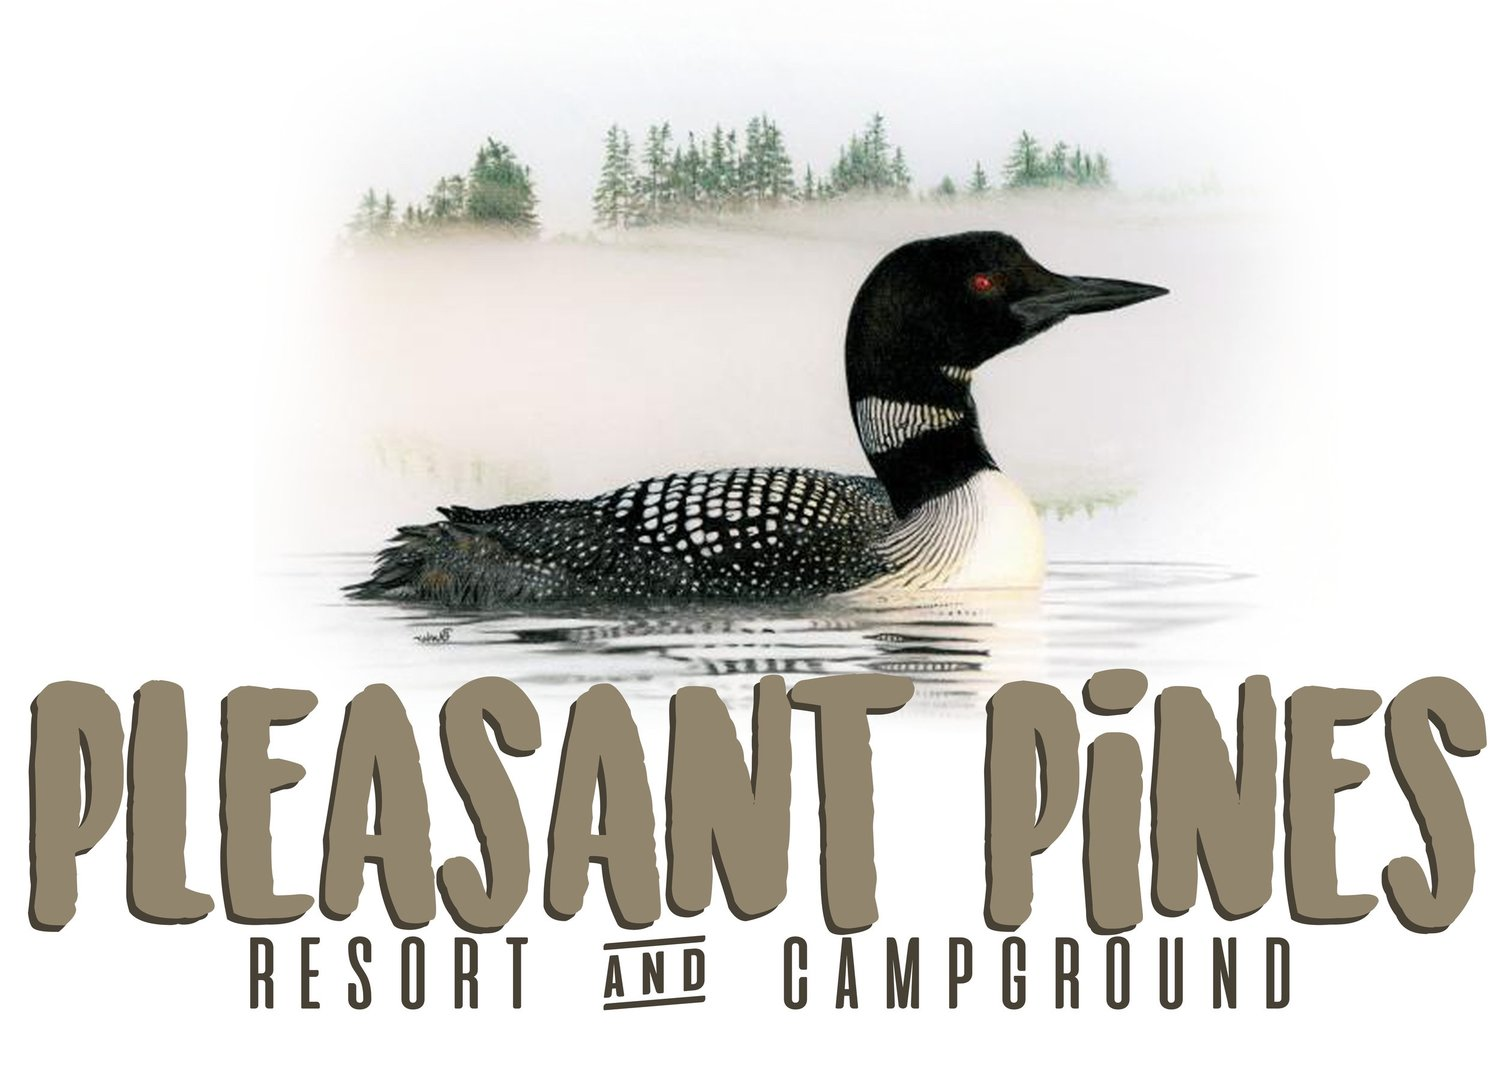 PLEASANT PINES RESORT & CAMPGROUND